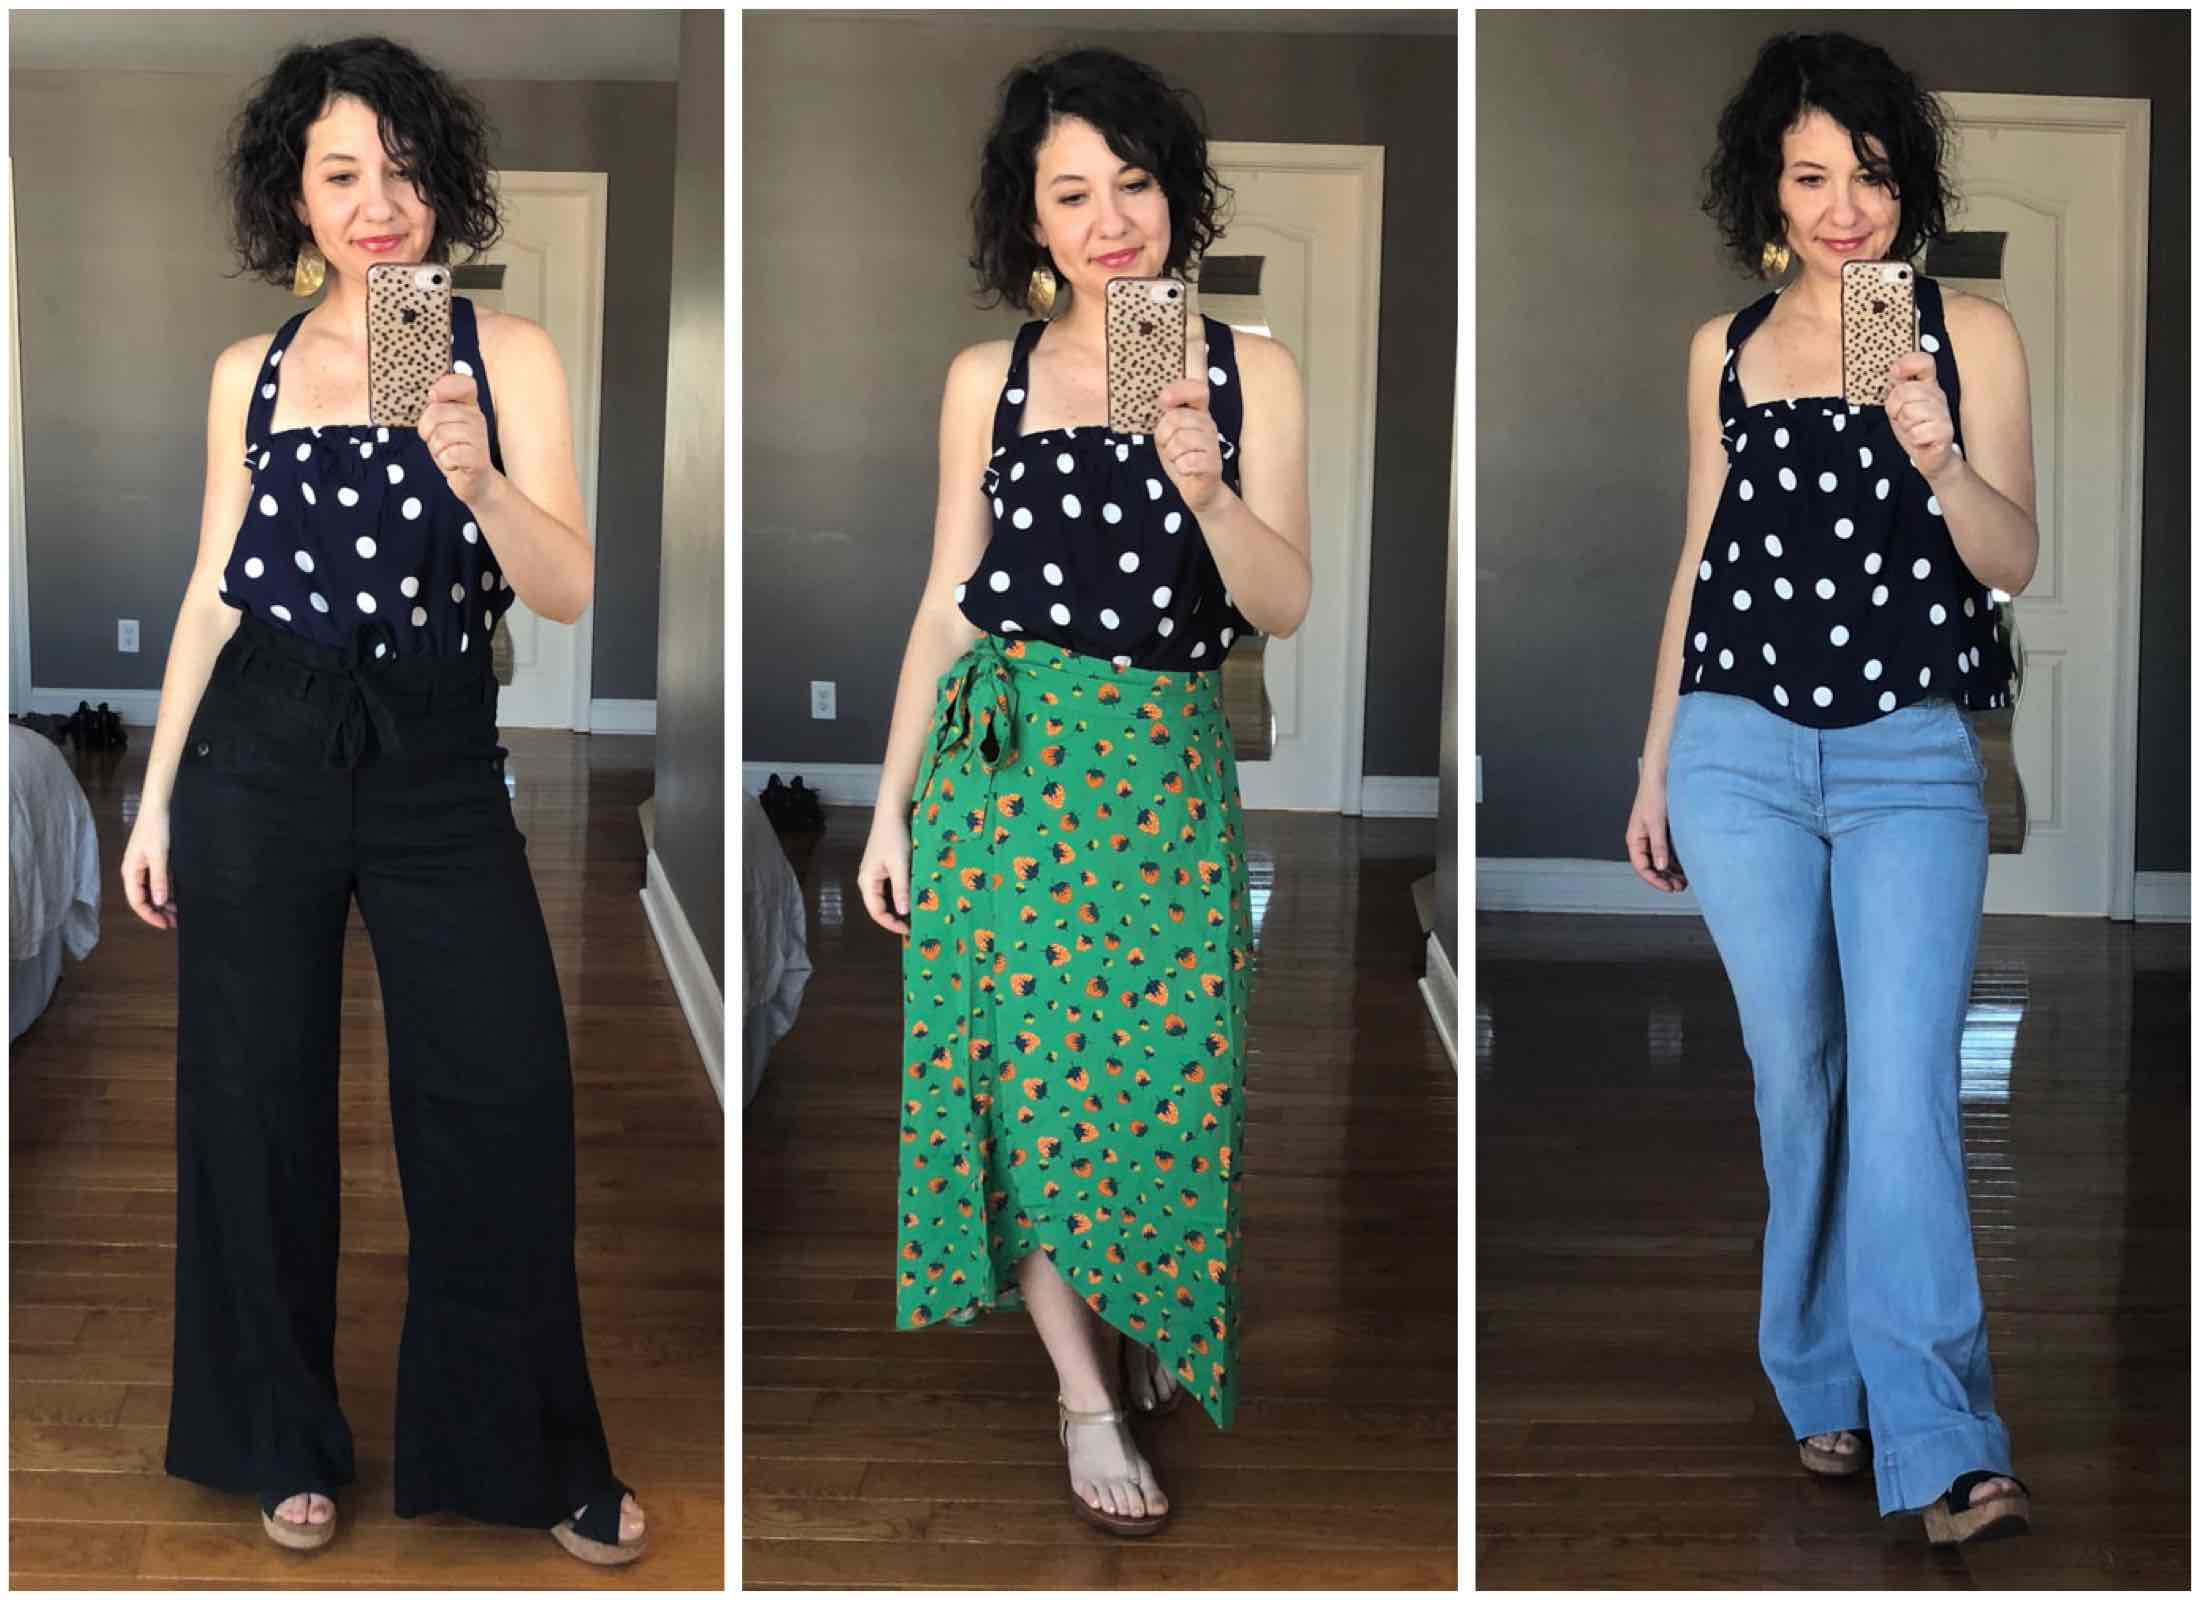 8b0c58c10d8 Easy   Playful  A Mini Capsule Wardrobe From Anthropologie - The Mom ...